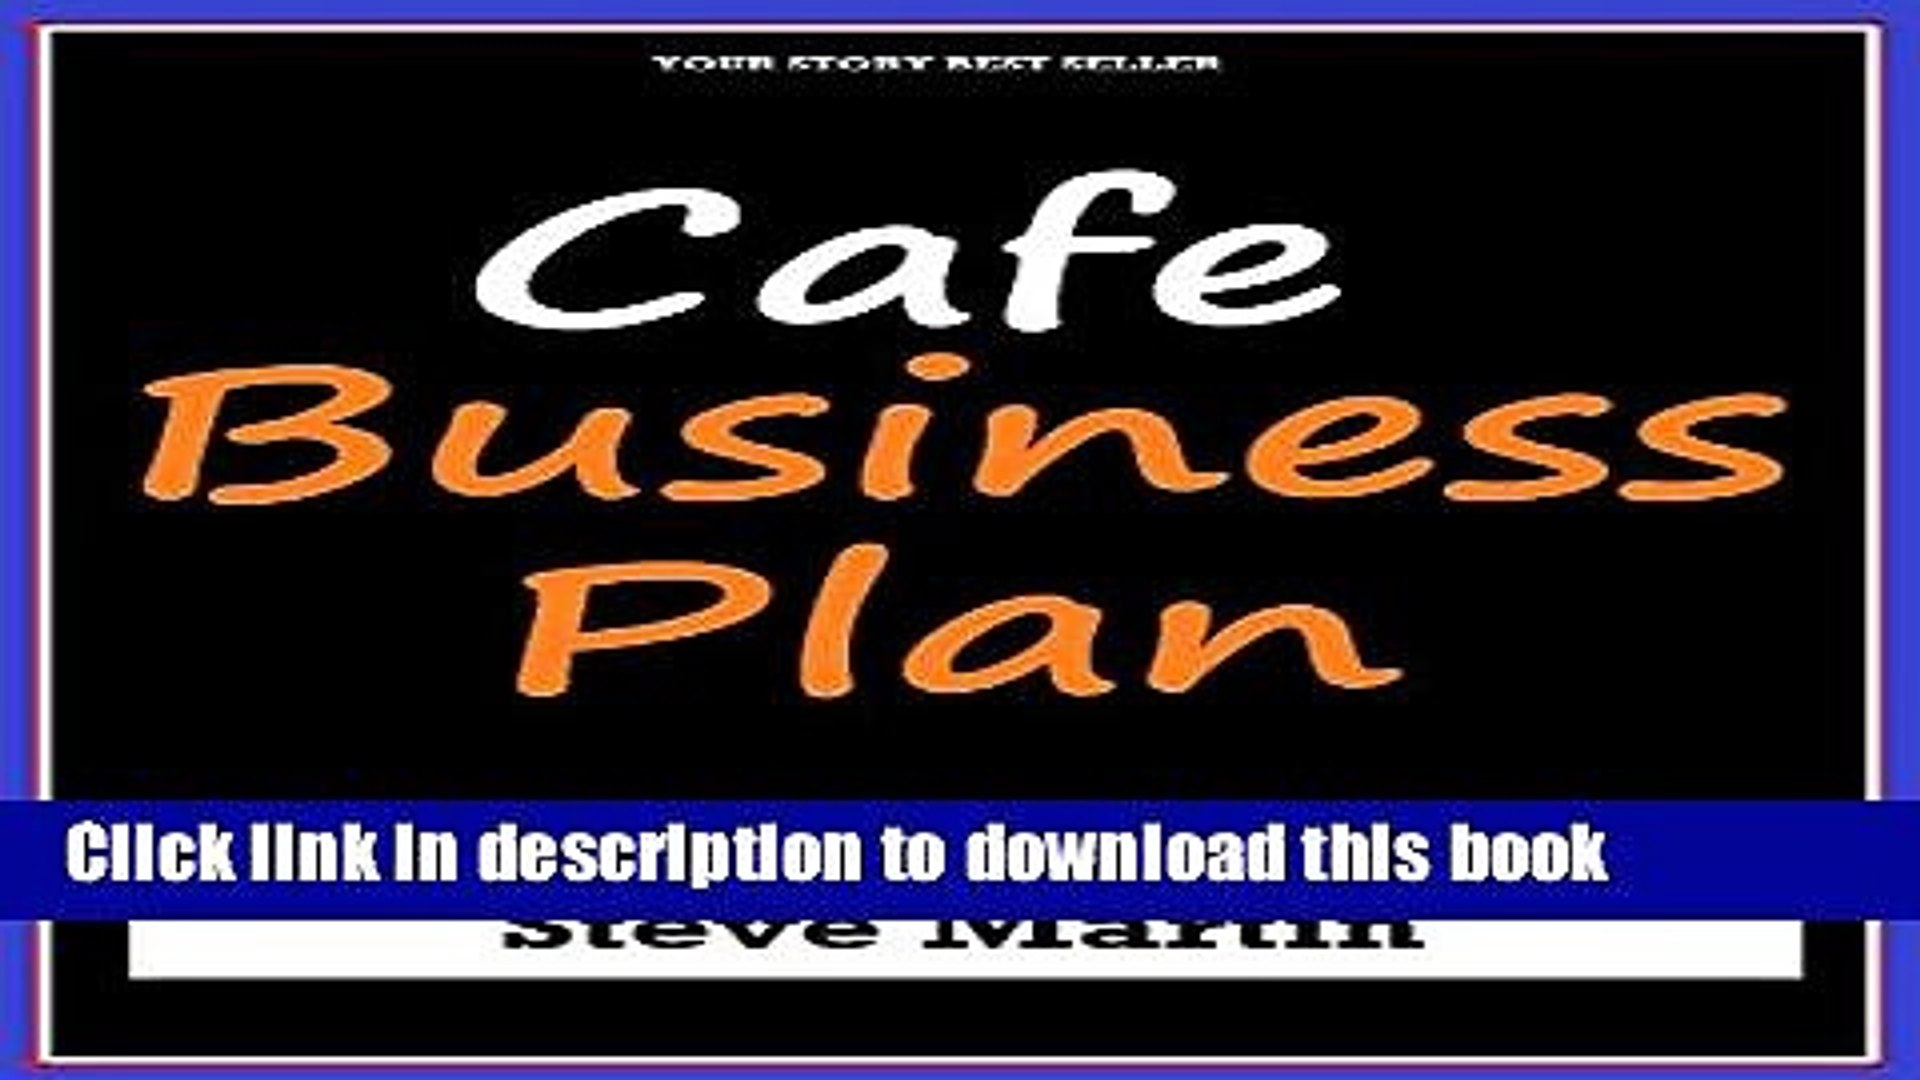 PDF  Business Plan - CAFE BUSINESS PLAN: PLAN SMALL CAFE BUSINESS  {Free Books|Online